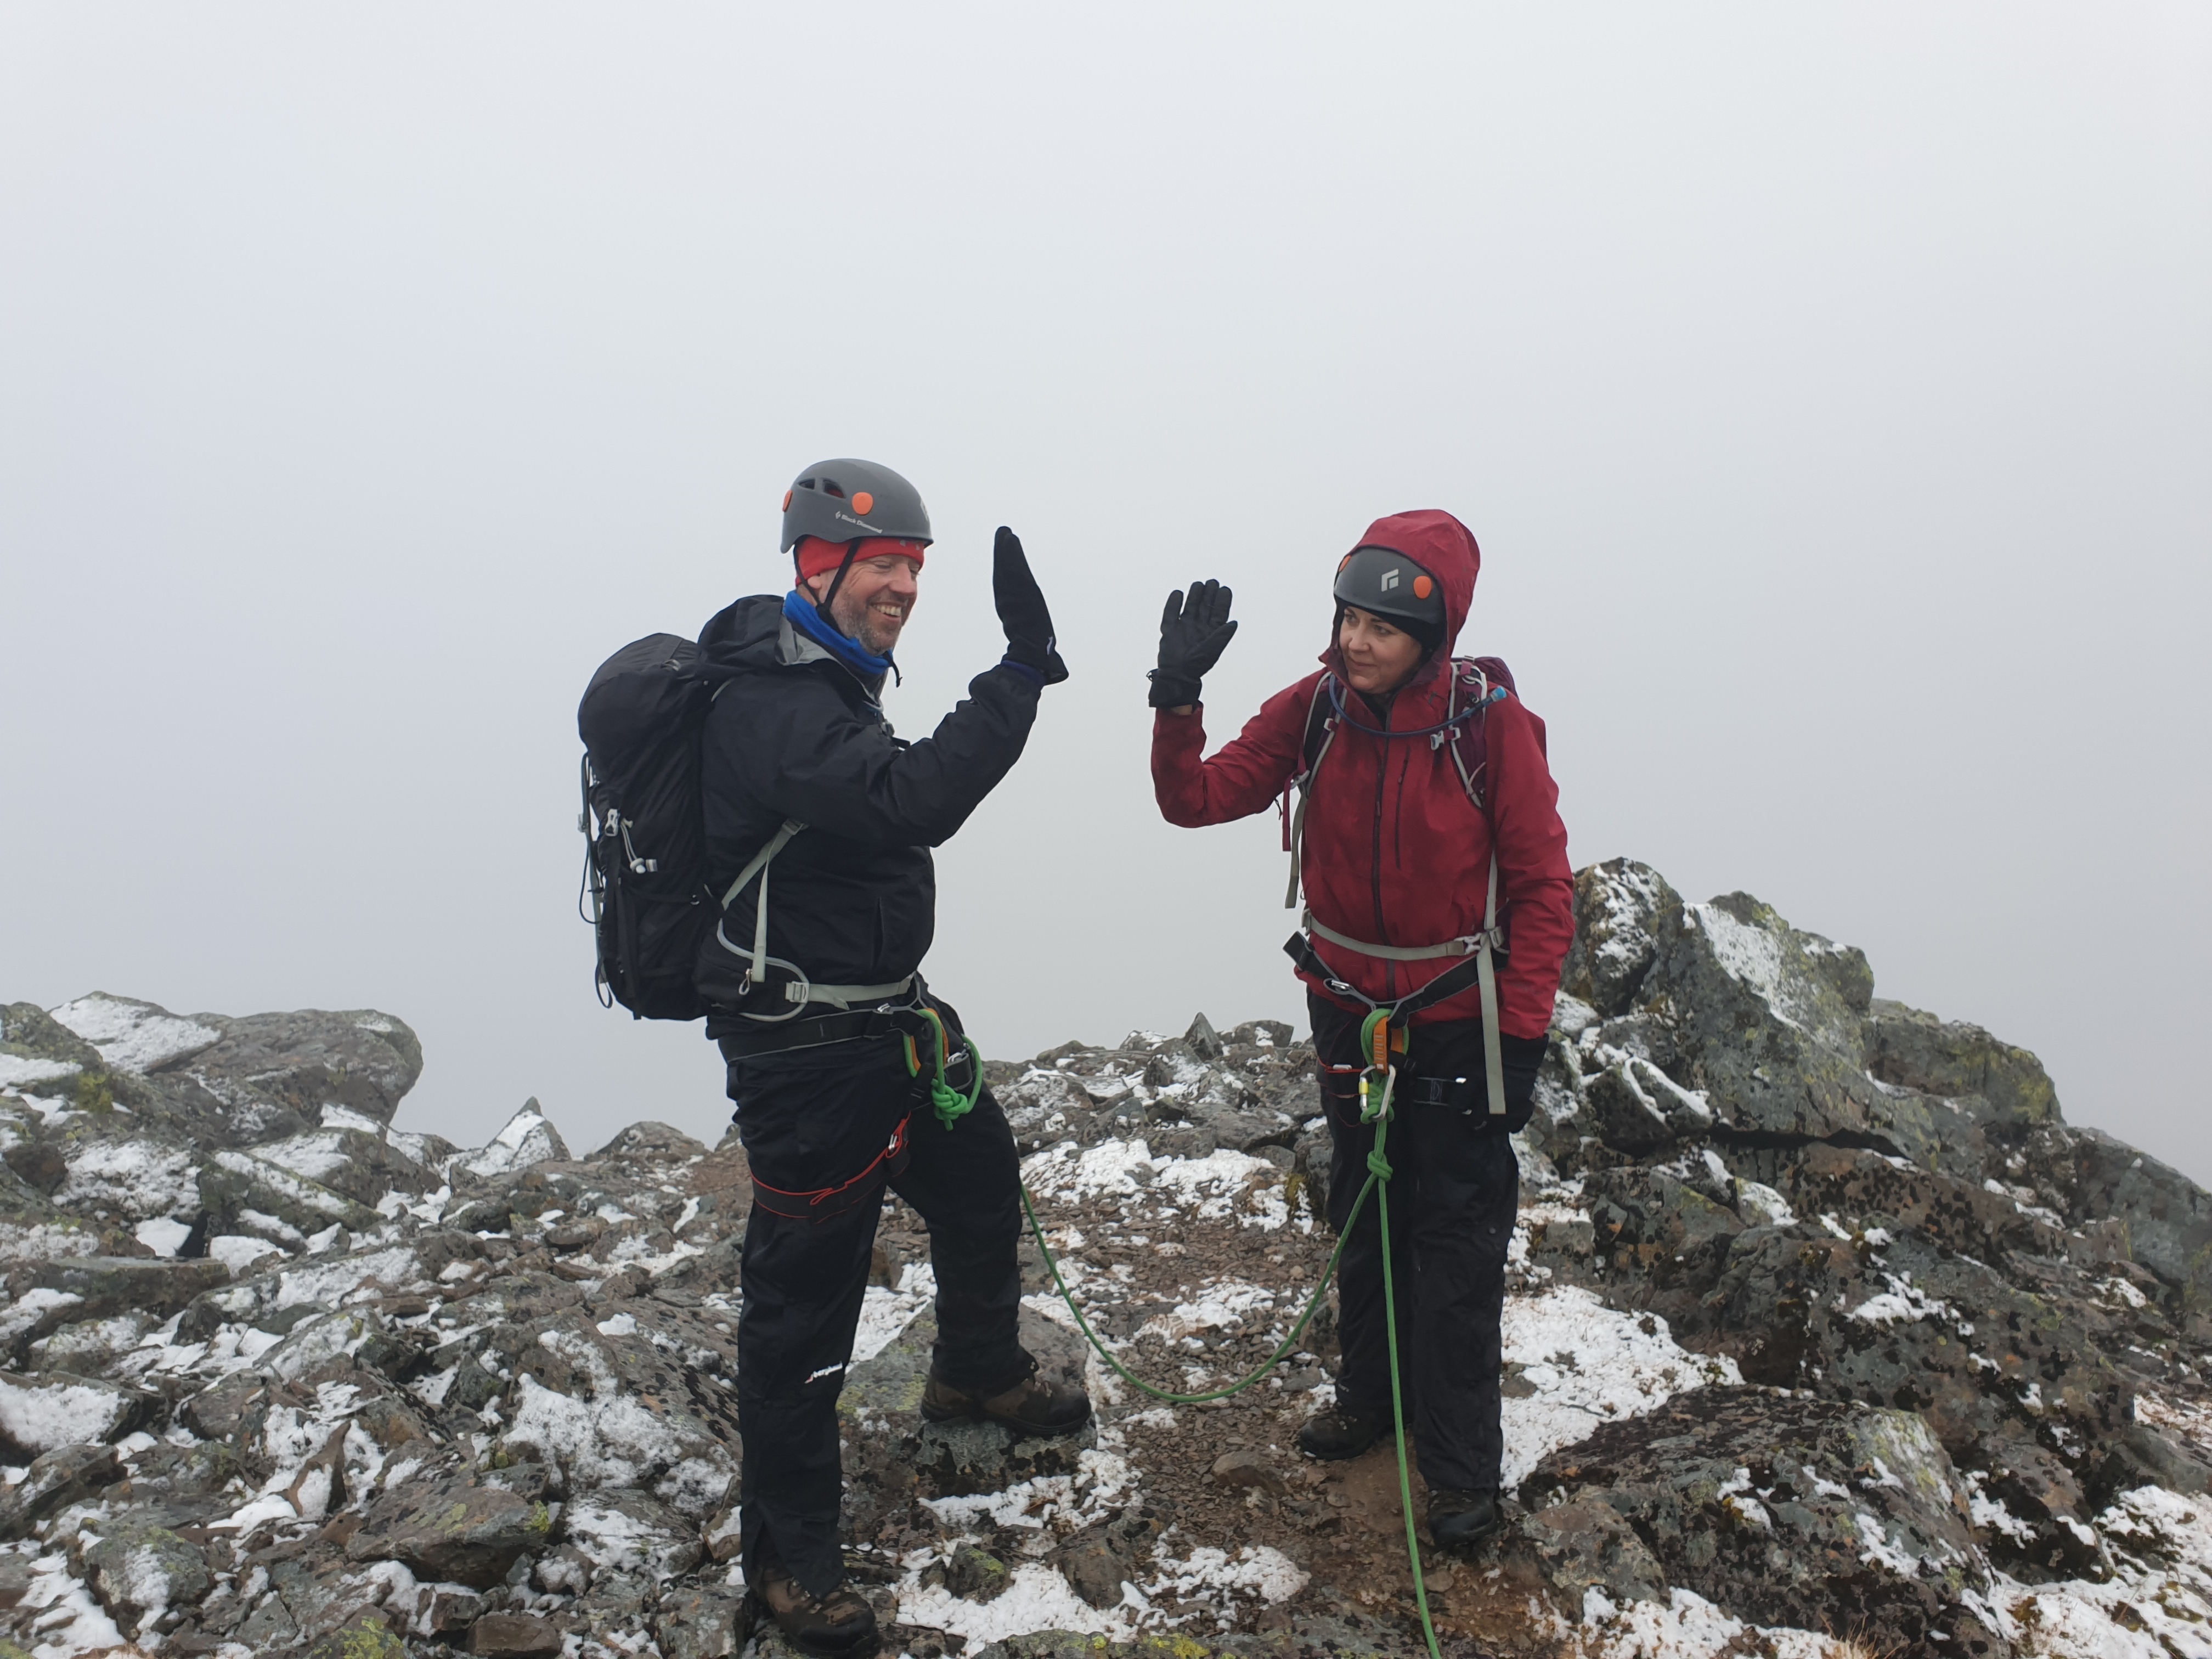 Join us on an ascent of Ledge Route, Ben Nevis, with a Ledge Route Guide from Lochaber Guides. This mountain scramble takes you up the North Face of Ben Nevis.